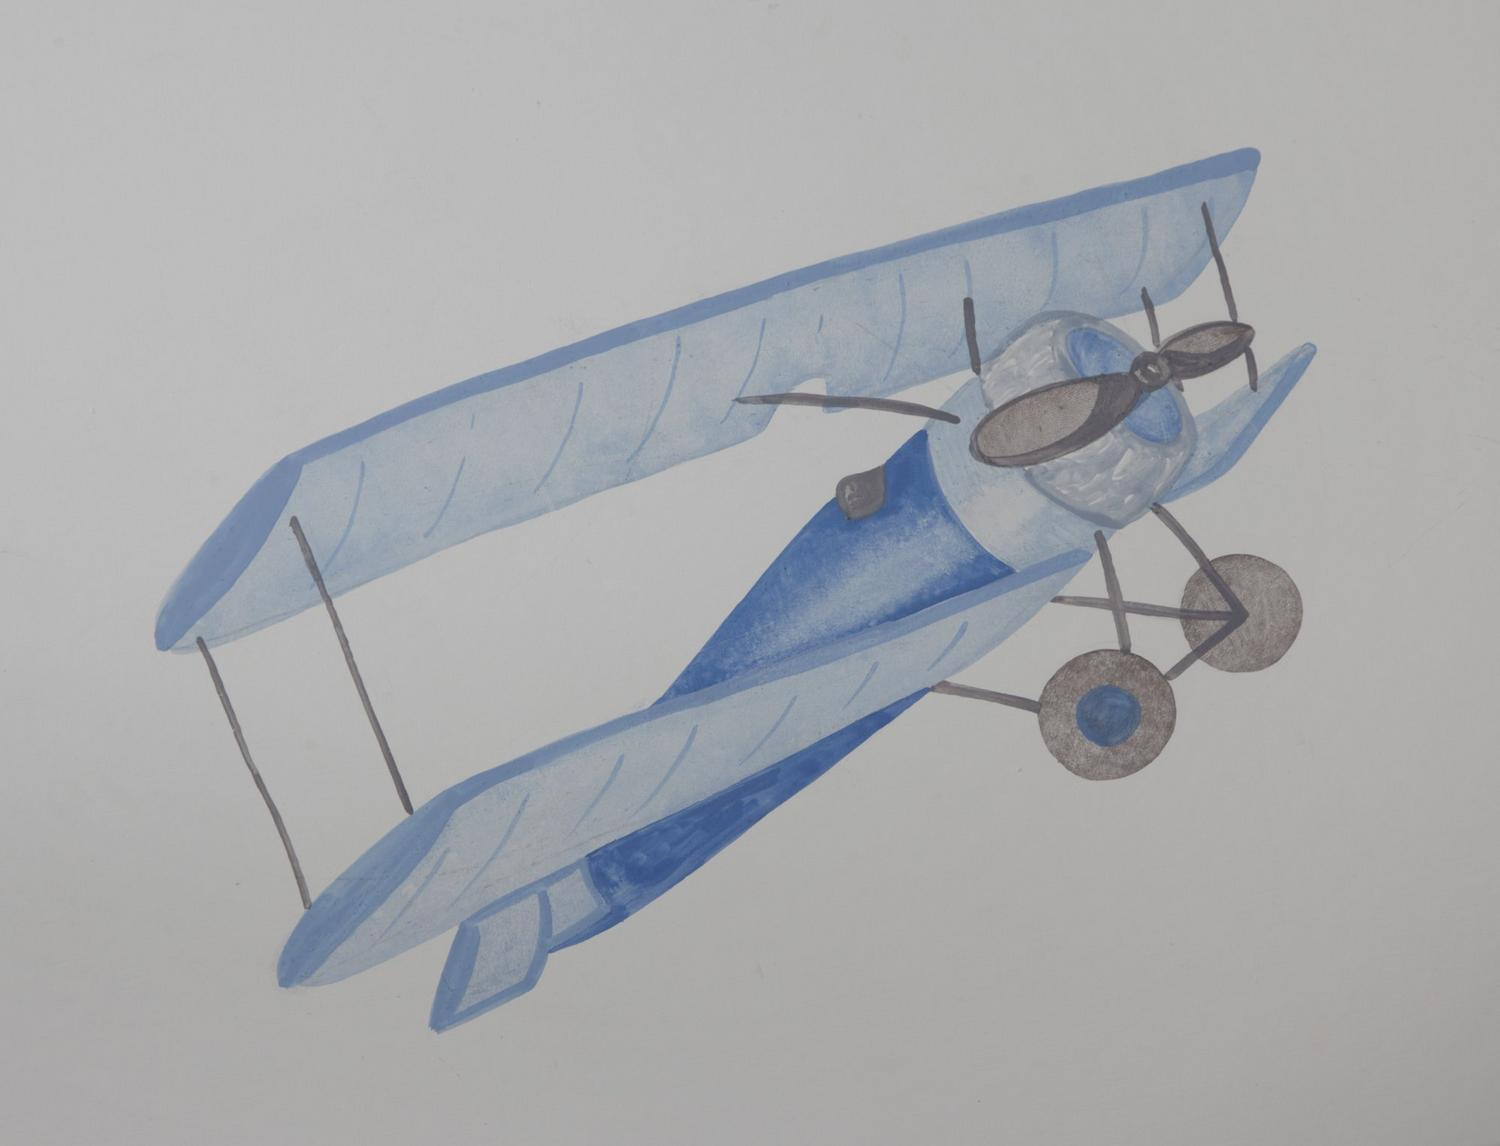 Blue airplane painting for Vintage Transport themed kids room | Dragons of Walton Street